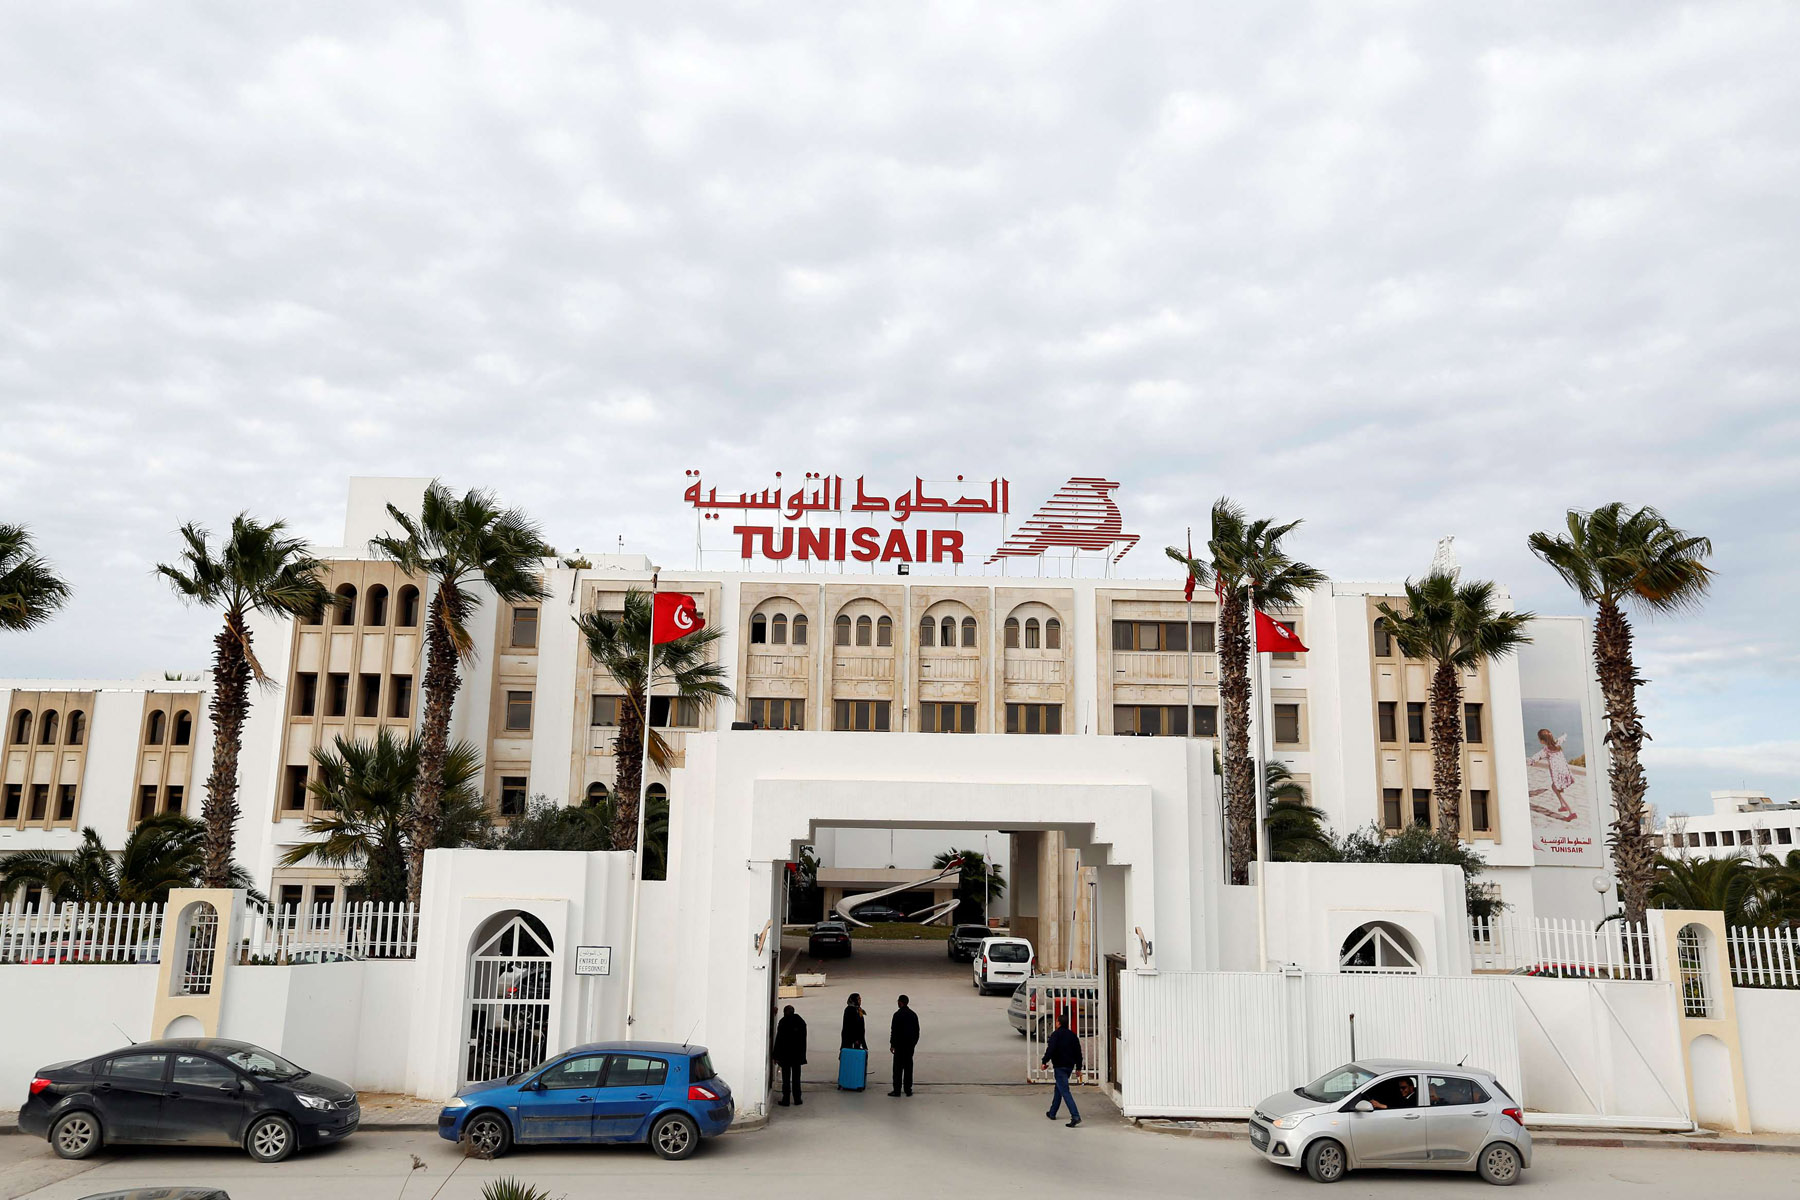 The entrance to the Tunisair headquarters, the Tunisian airline company is pictured in Tunis ,Tunisia, March 2, 2018. (Reuters)